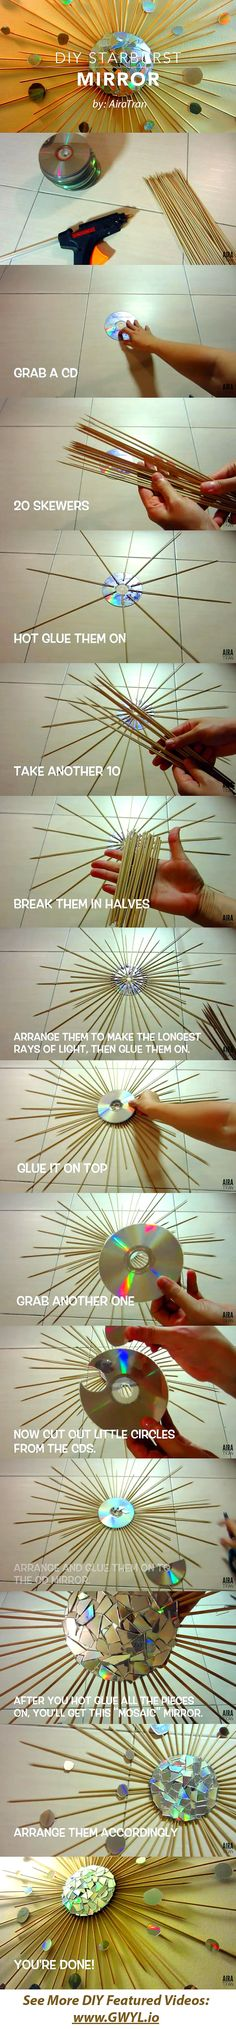 Do you have old CD's laying around your house? Why not turn them into a pretty home decor instead. See video and full written instructions here==>  | DIY Starburst Mirror | http://gwyl.io/diy-starburst-mirror/